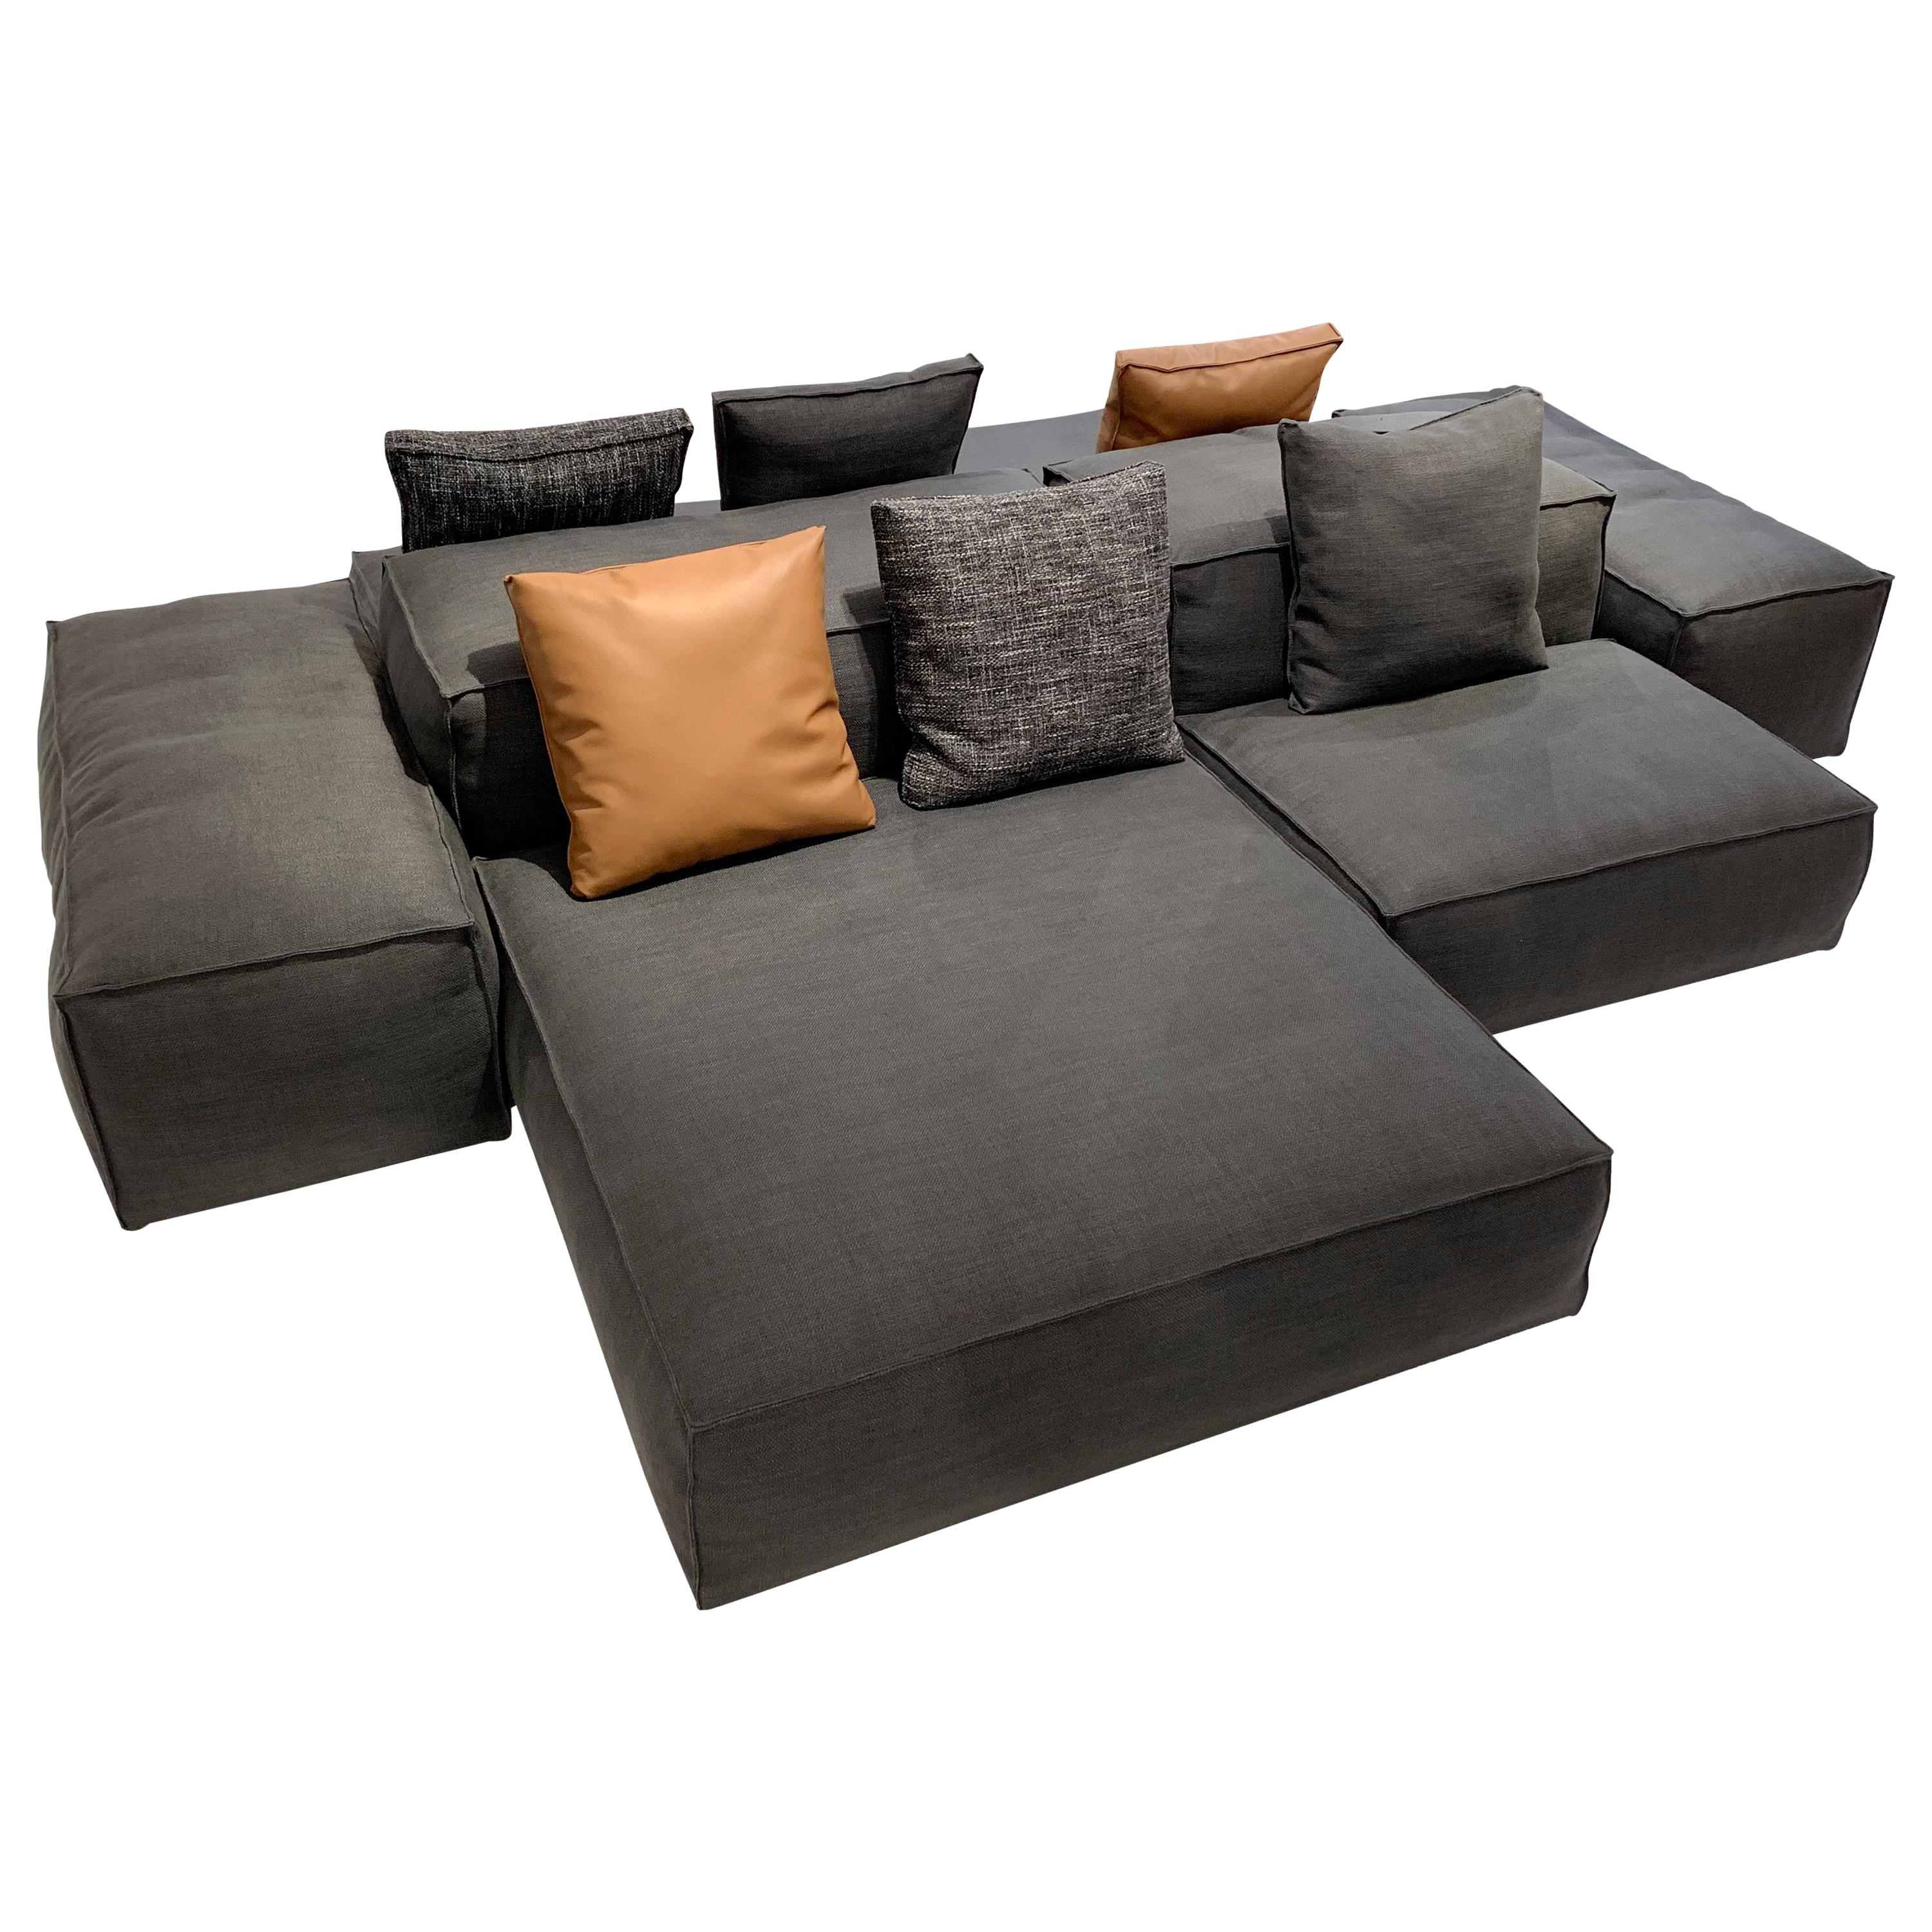 Extrasoft 8 Piece Modular Sofa In Gray Fabric By Piero Lissoni And Living Divani At 1stdibs